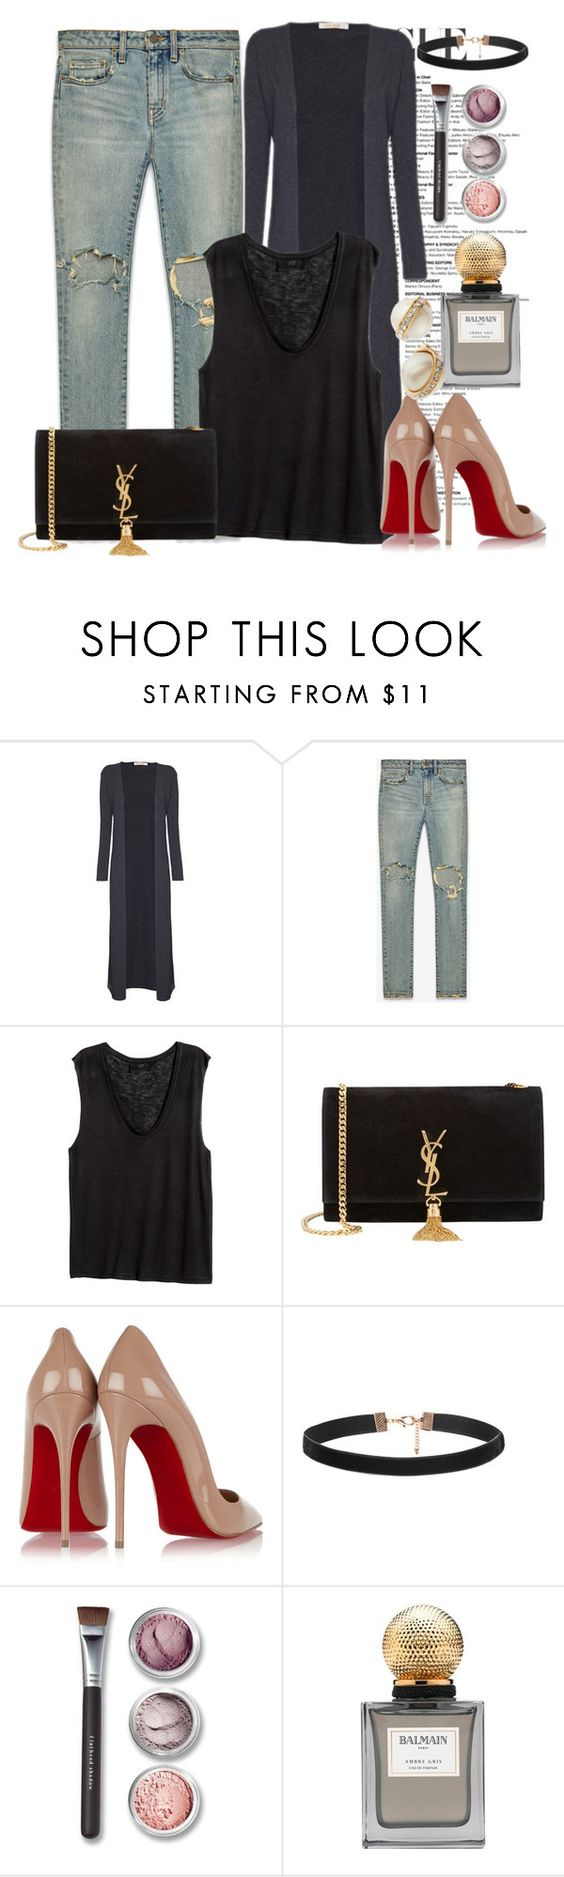 """""""Untitled #1701"""" by ekozlova ❤ liked on Polyvore featuring Yves Saint Laurent, H&M, Christian Louboutin, Bare Escentuals, Balmain, Kate Spade, women's clothing, women, female and woman"""